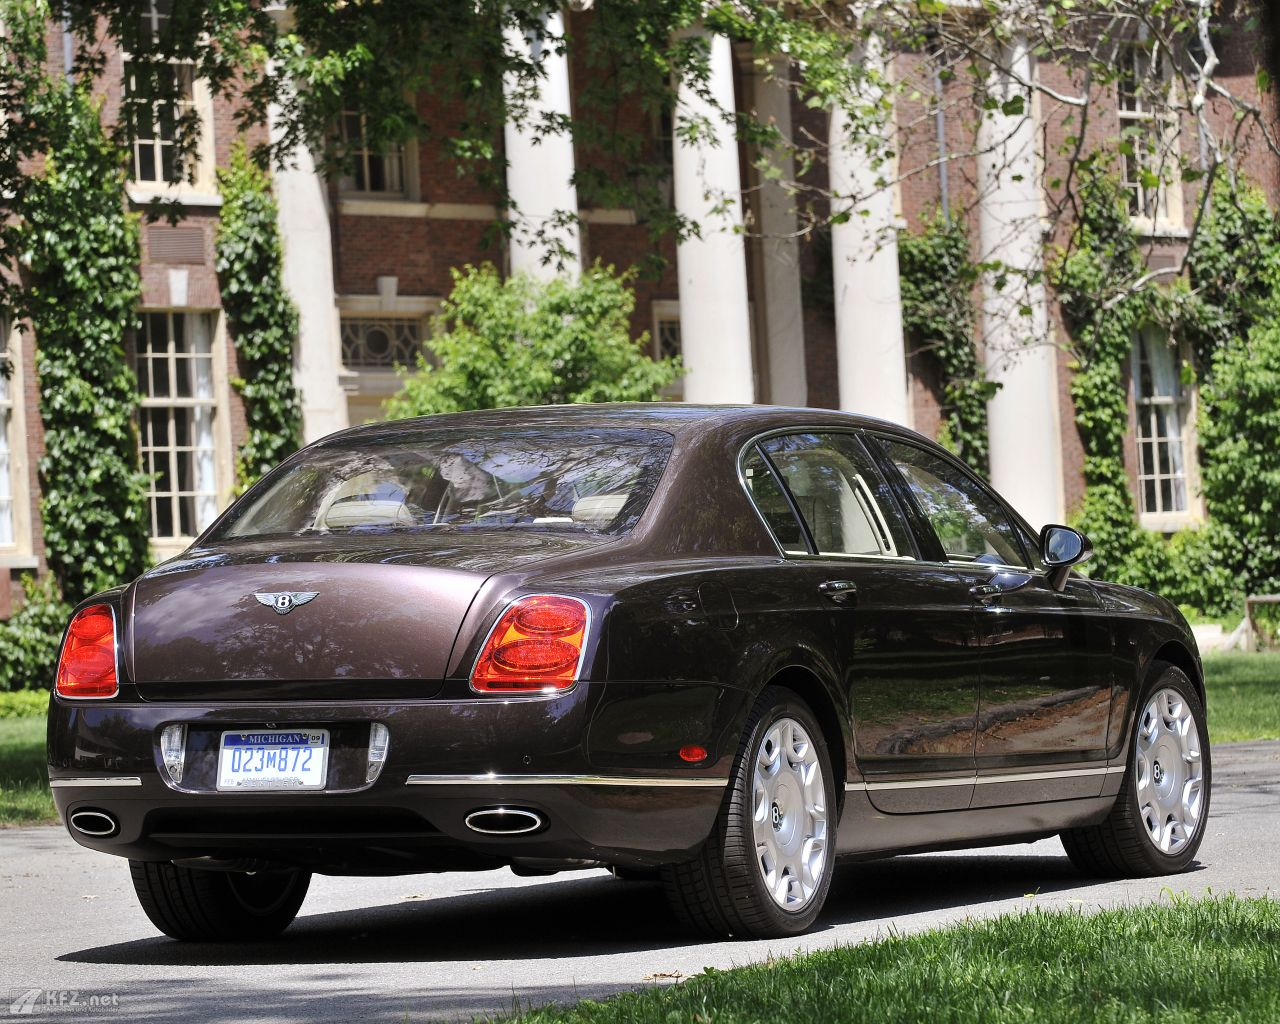 bentley-continental-1280x1024-13